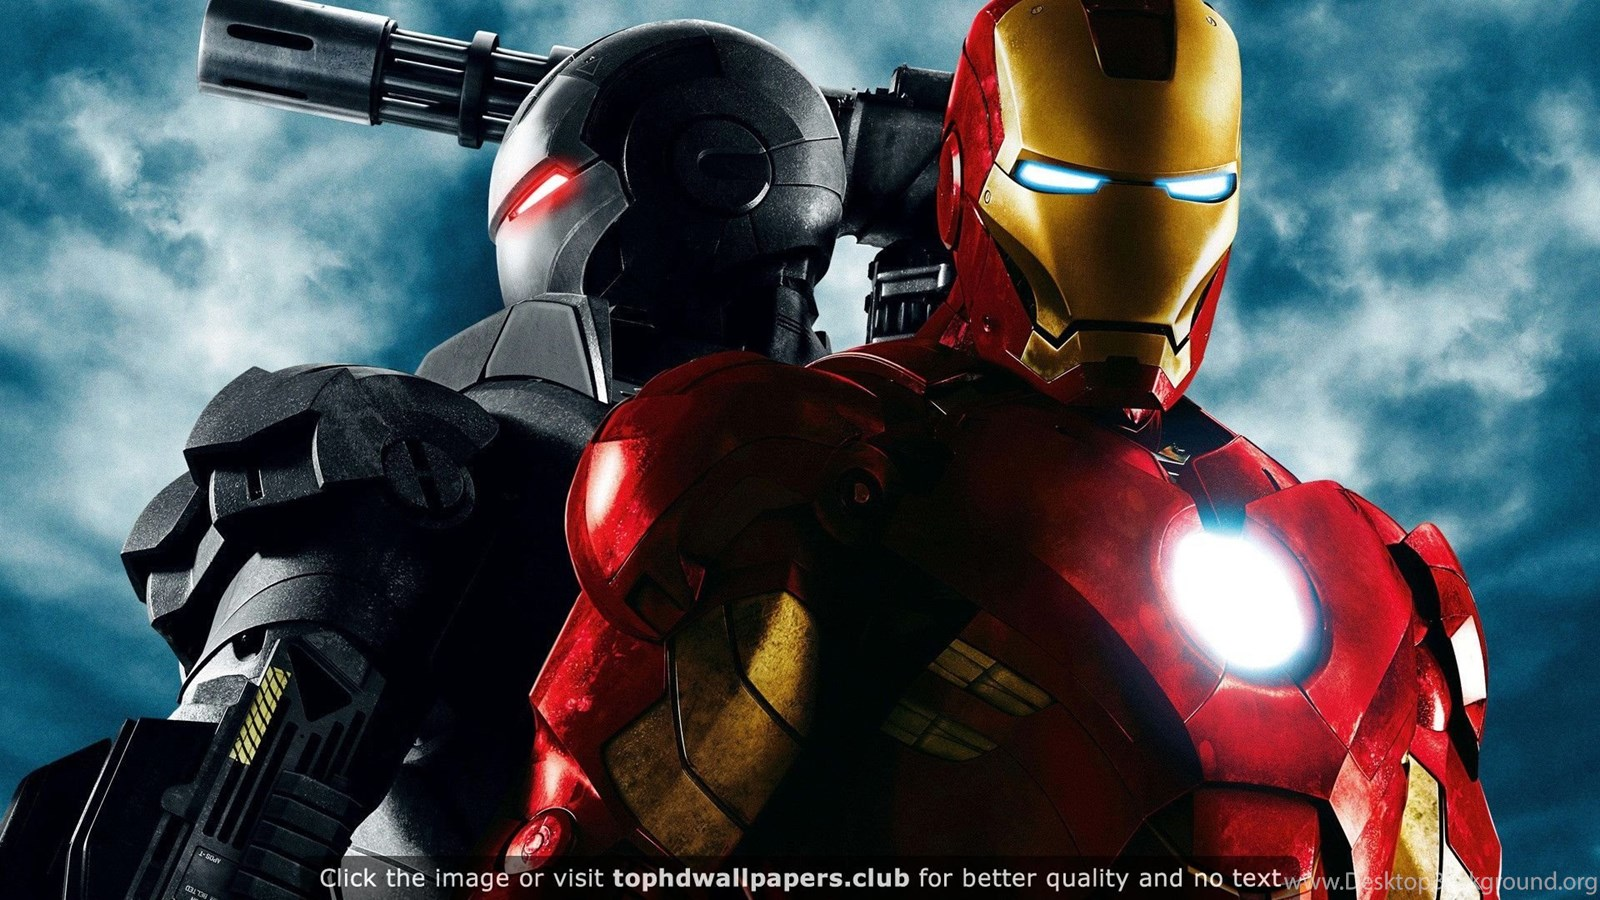 iron man 3 hd 4k or hd wallpapers for your pc, mac or mobile device